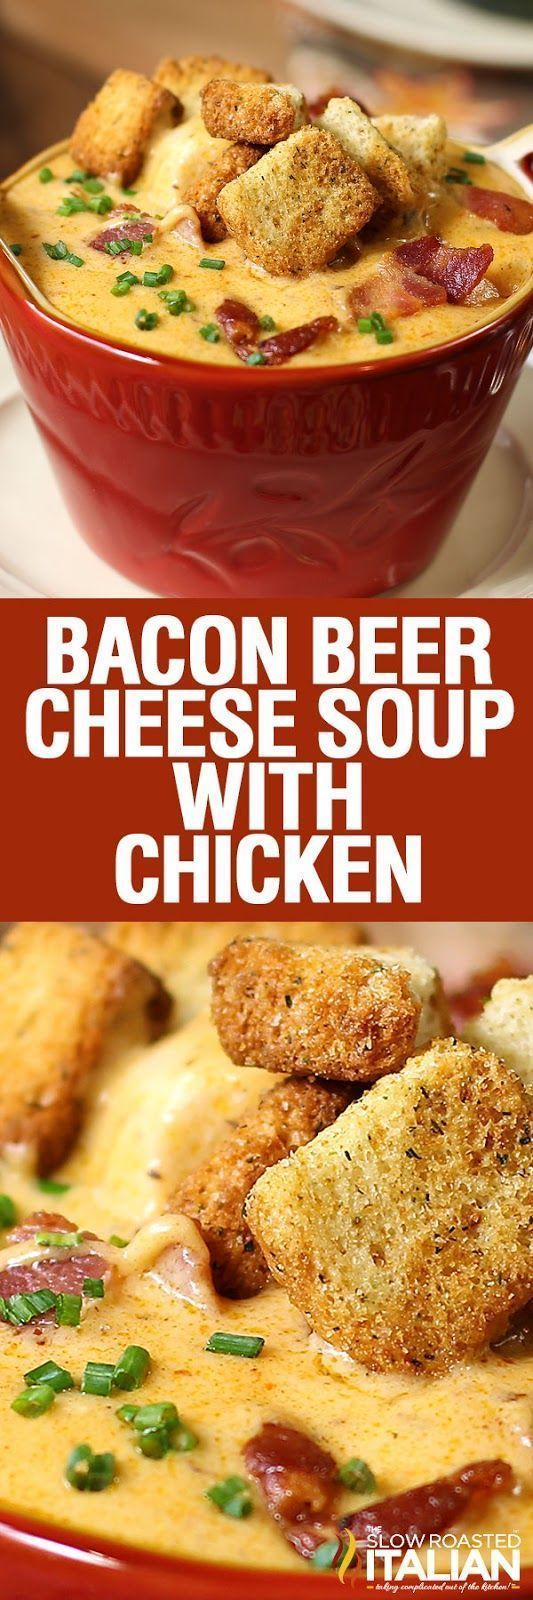 Minute Bacon Beer Cheese Soup with Chicken is one of our all time most popular recipes and for good reason. BACON.BEER.